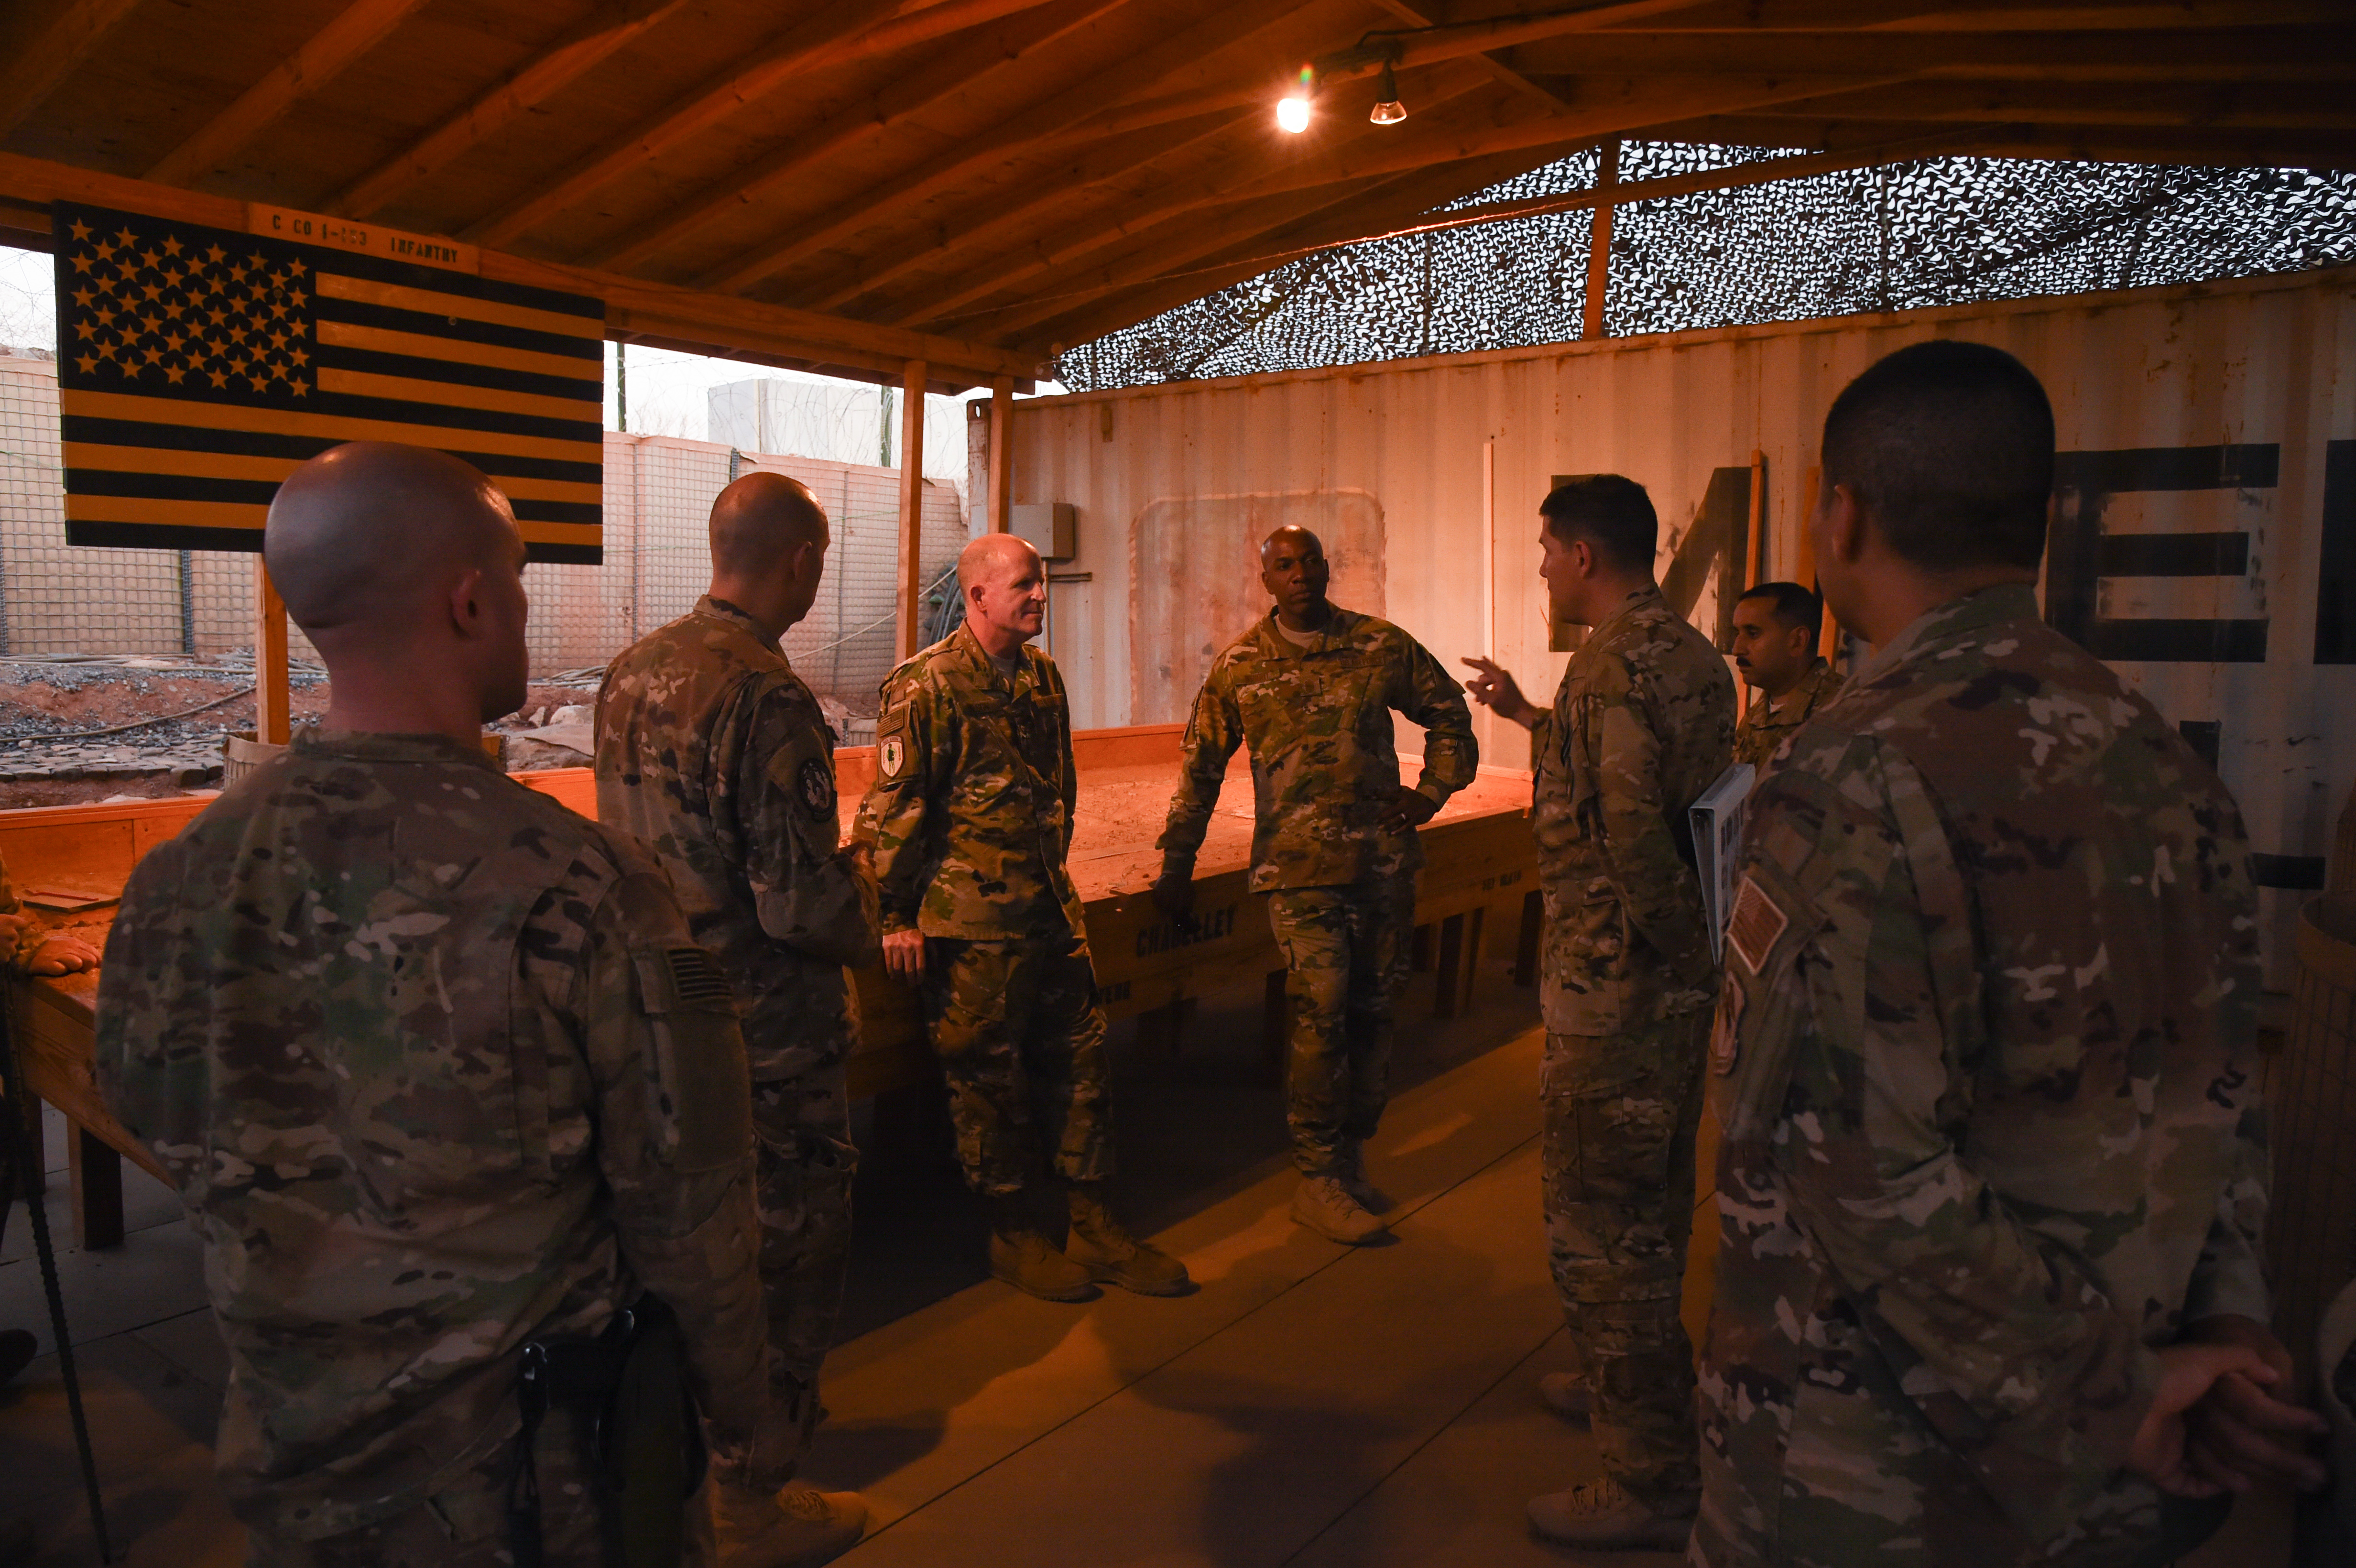 U.S. Air Force Vice Chief of Staff Gen. Stephen Wilson and Chief Master Sgt. of the Air Force Kaleth Wright receive information from service members who work on an airfield near Camp Lemonnier, Djibouti, April 11, 2017. Wilson visited CJTF-HOA and other tenant commands with Wright to gain a better understanding of Air Force integration and missions in the U.S. Africa Command area of responsibility. (U.S. Air National Guard photo by Staff Sgt. Penny Snoozy)